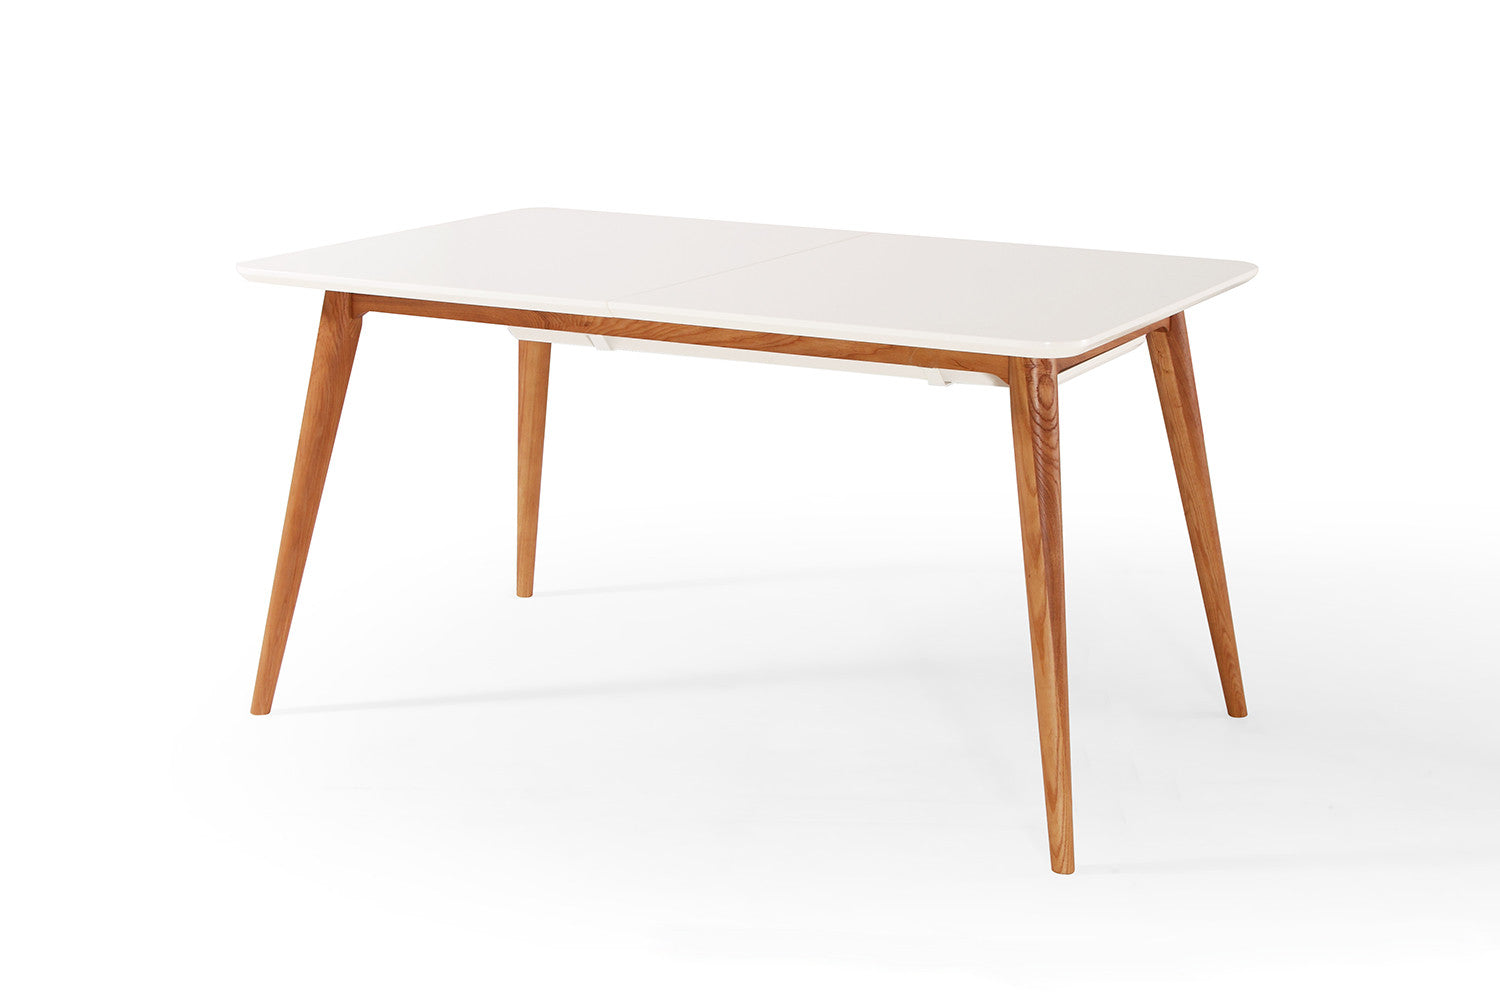 Table de salle manger extensible scandinave wyna dewarens for Table de salle manger